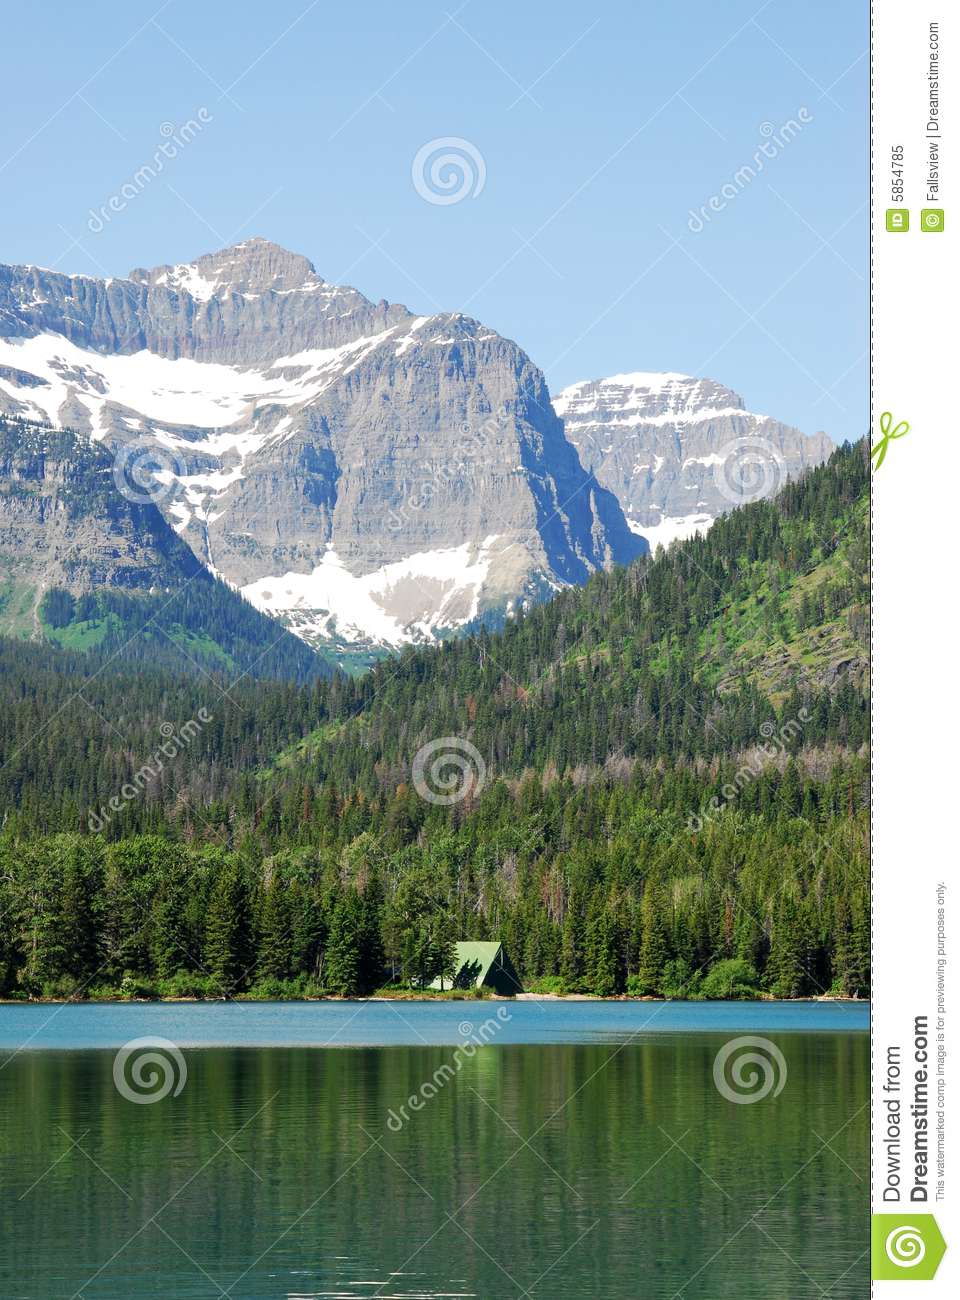 Snow mountains and lake